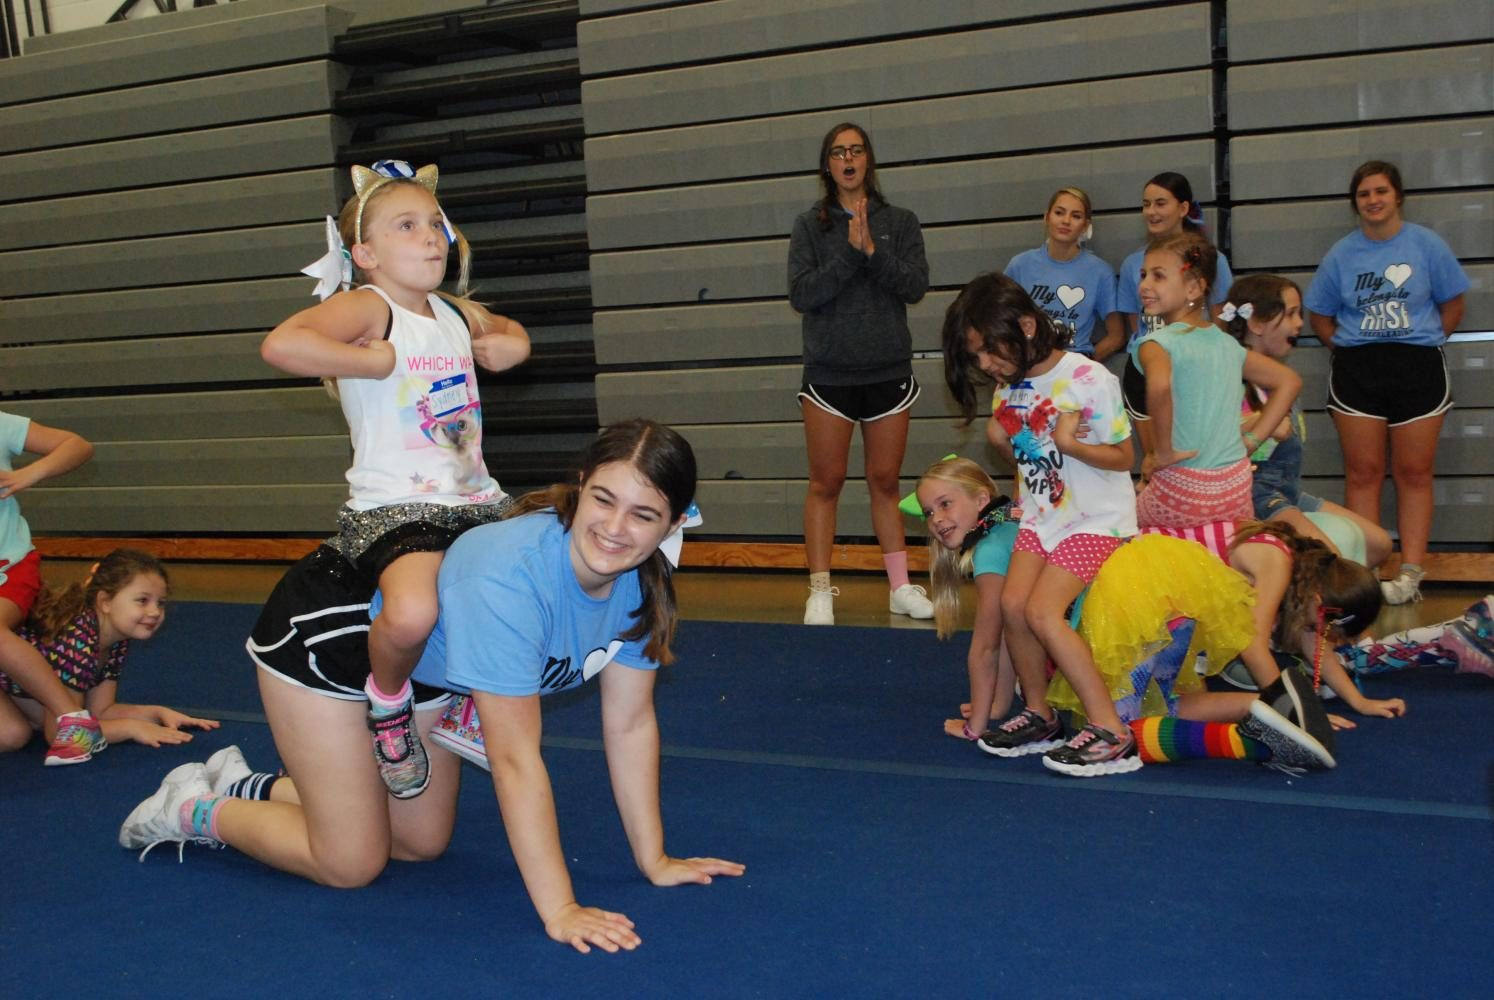 Sophomore Annie Tromboli hangs out with some young cheerleaders during break. She volunteered this summer at Hagertys Youth Cheer Camp.